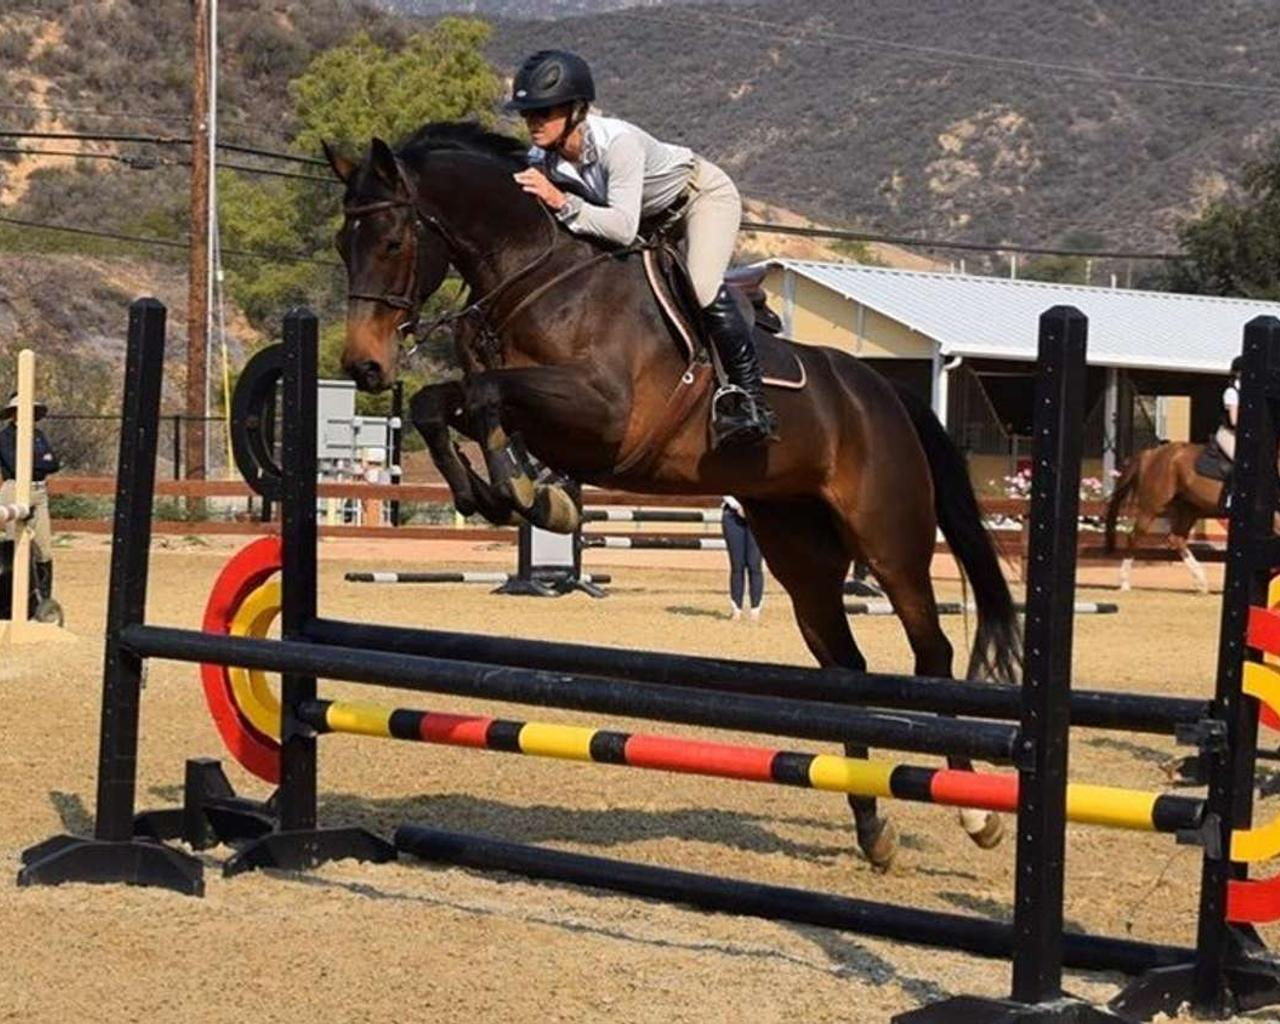 California Equestrian Robert Gage Commits Suicide After Receiving Permanent Ban — Was He Wronged?